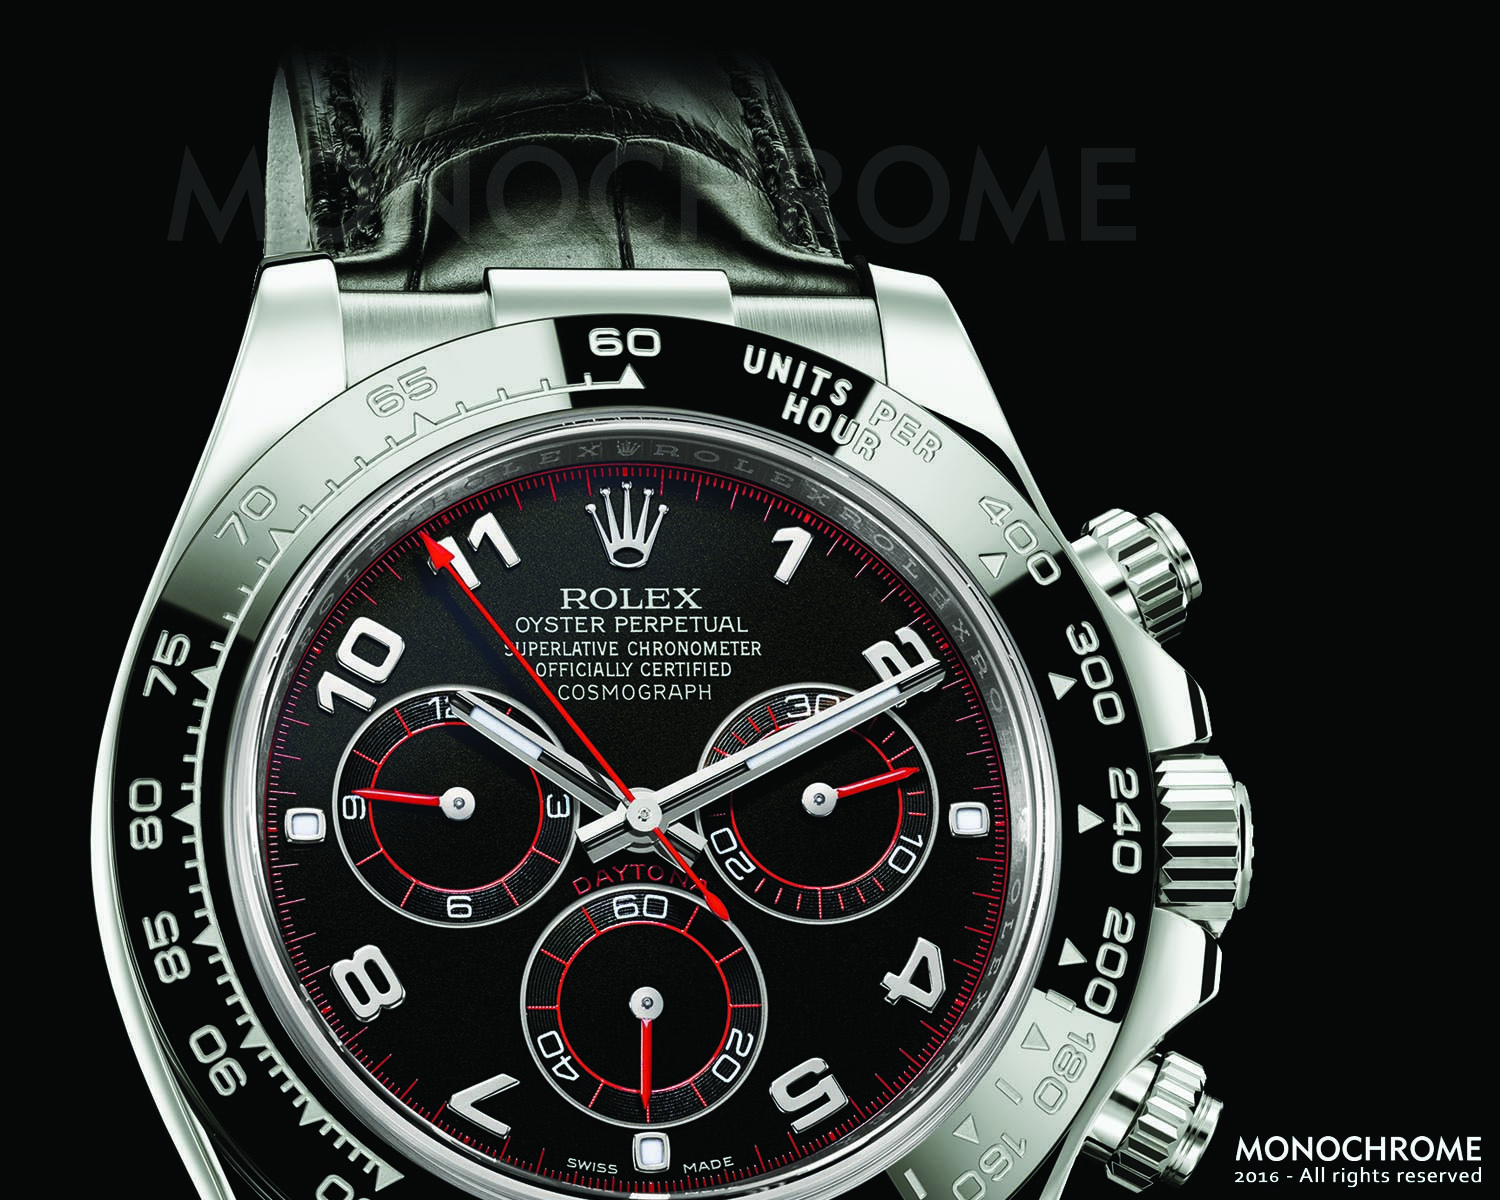 Rolex Daytona 116519LN White Gold Ceramic bezel leather strap - Rolex Baselworld 2016 - Rolex Predictions 2016 - Monochrome